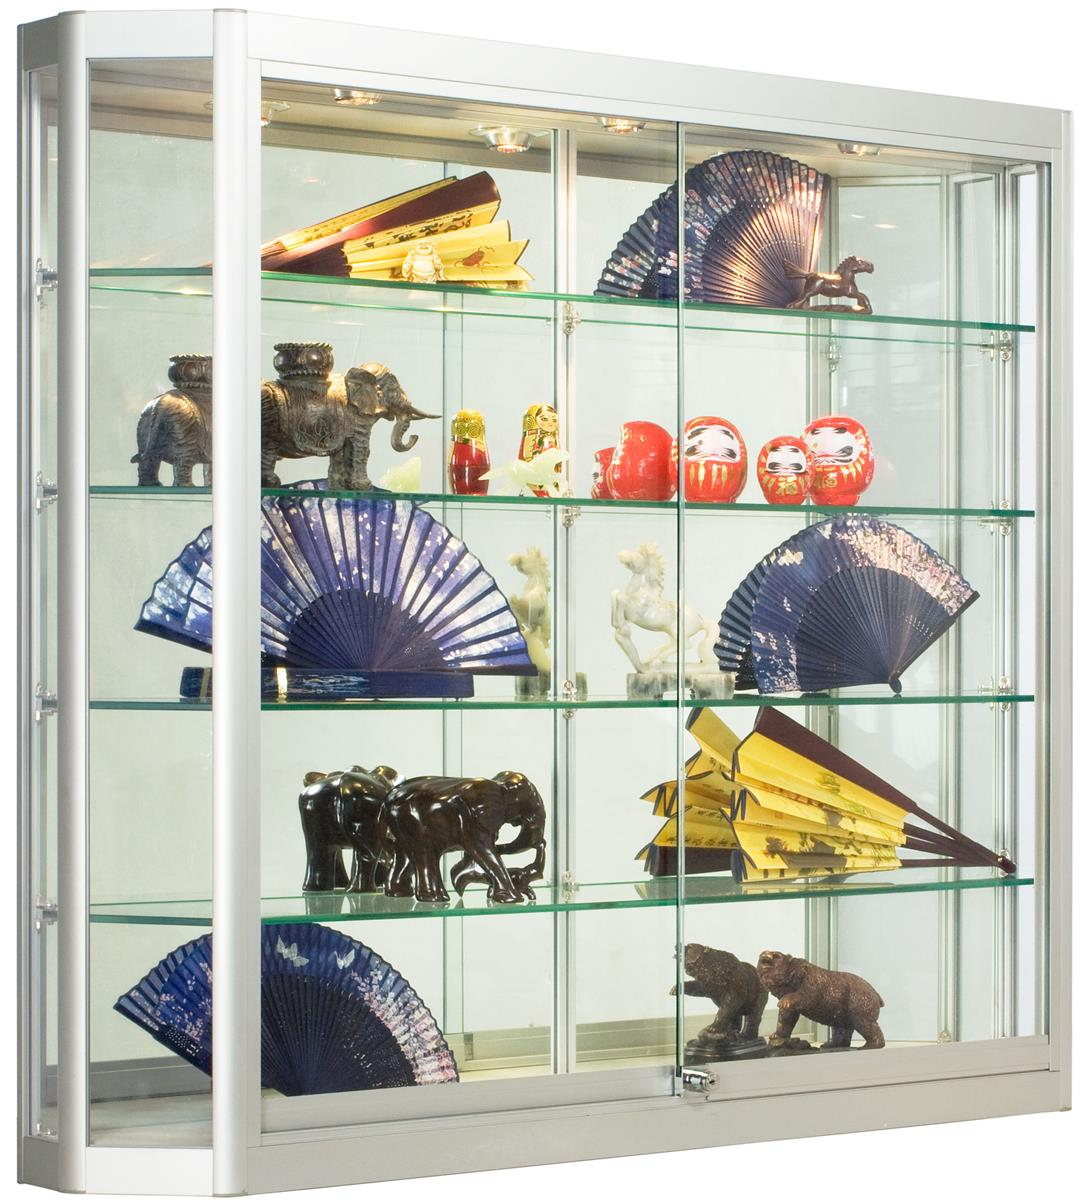 Wall Mounted Display Case 4x3 Wall Mounted Display Case W Angled Front Sliding Doors Locking Silver